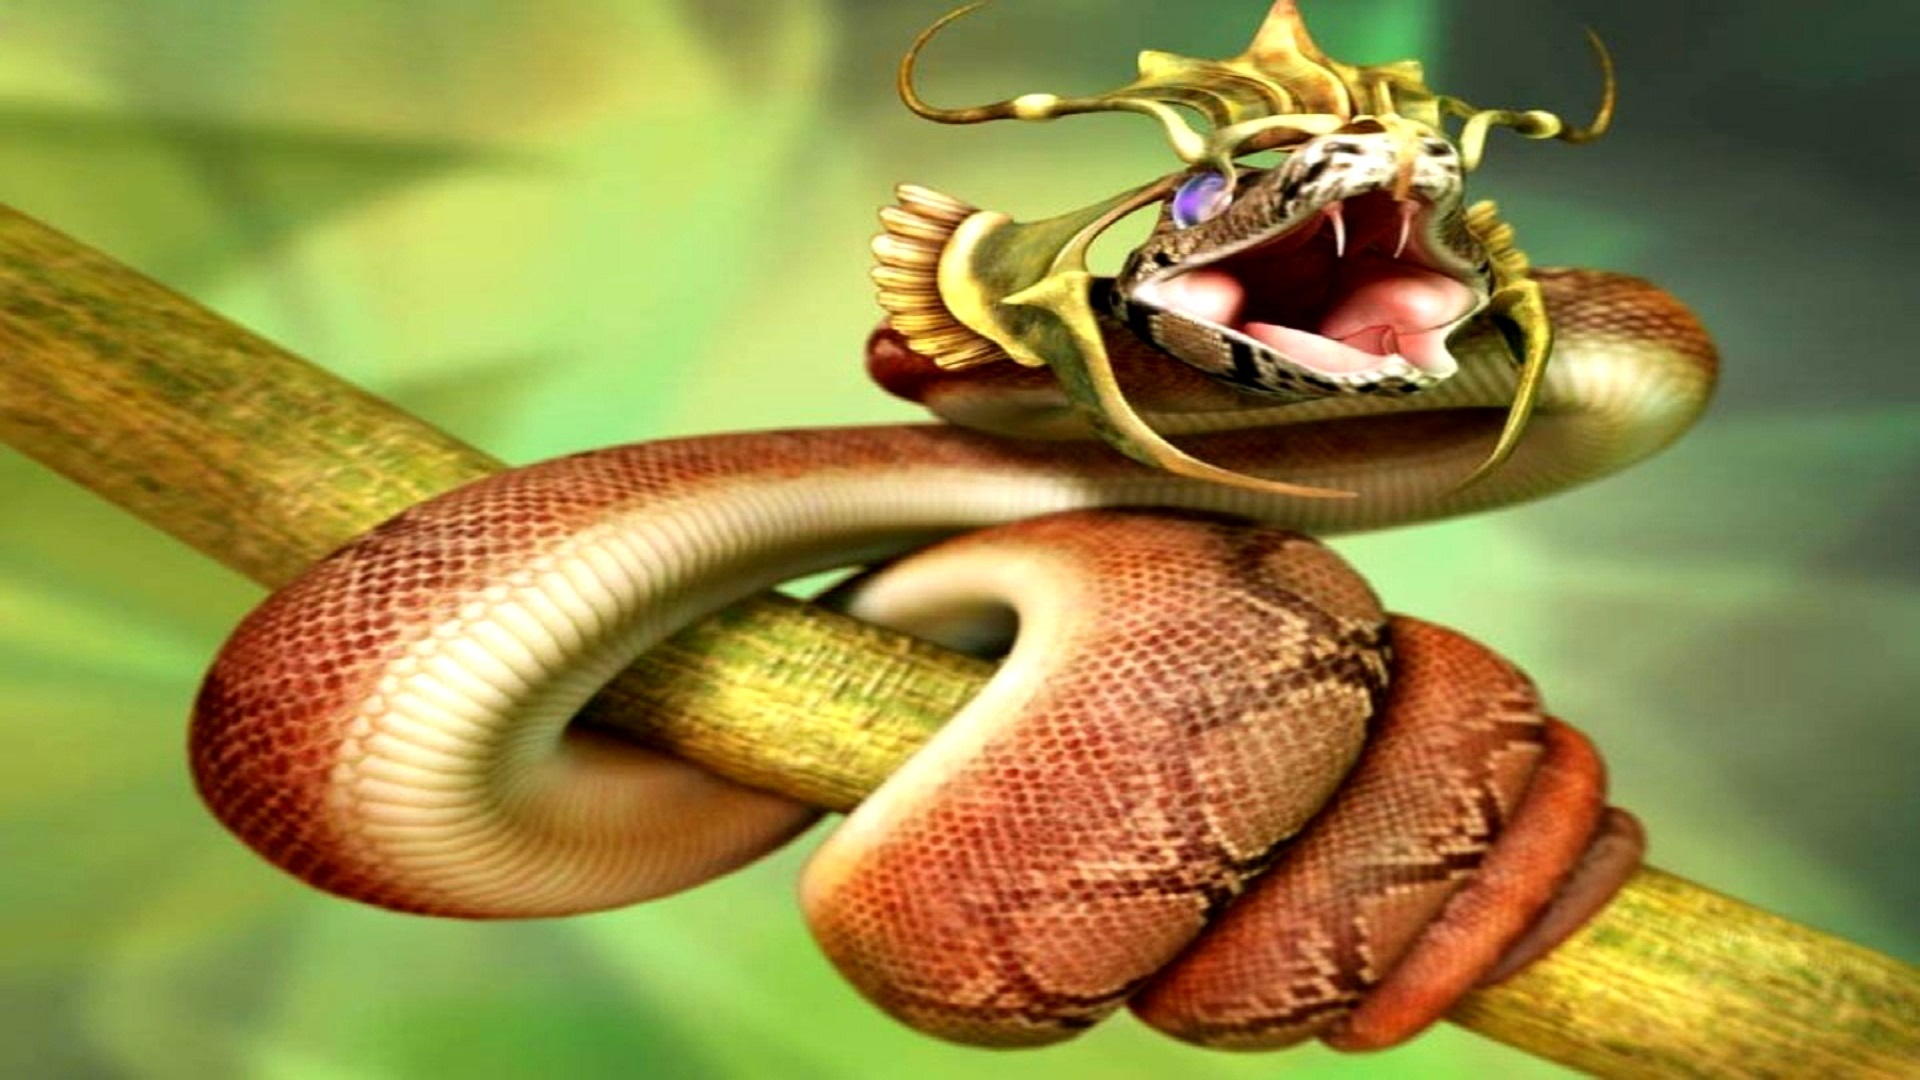 Funny Wallpapers For Desktop Hd Snake Hd Free Wallpapers For Desktop Hd Wallpaper